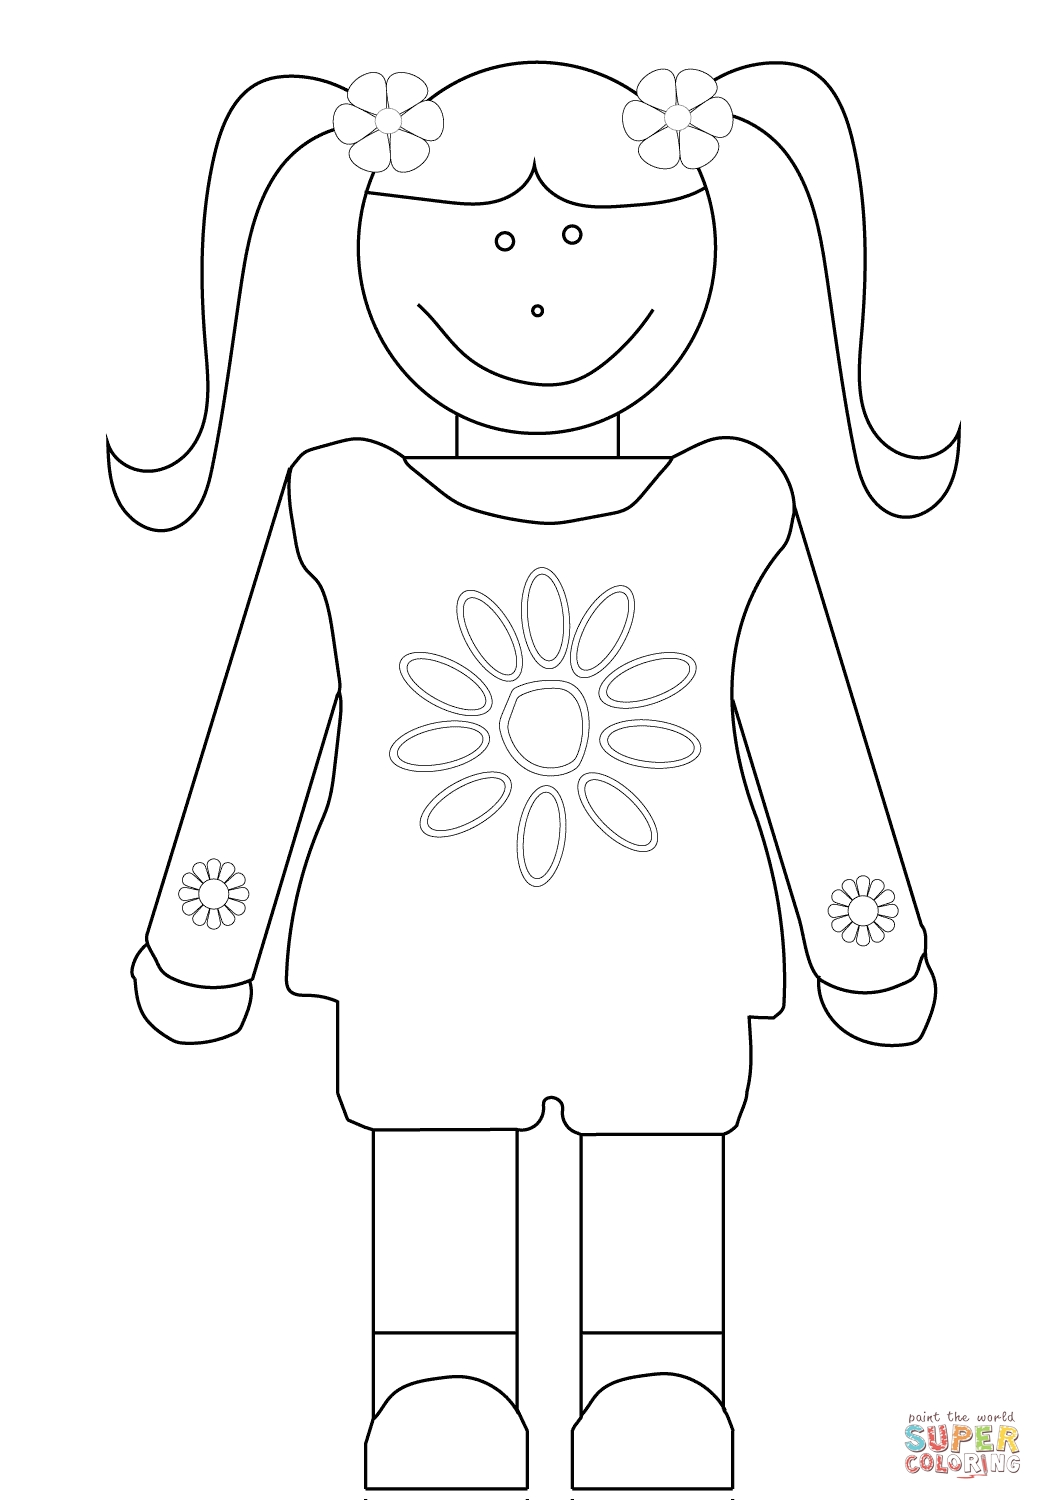 daisy girl scout coloring pages - girl scouts daisy coloring pages